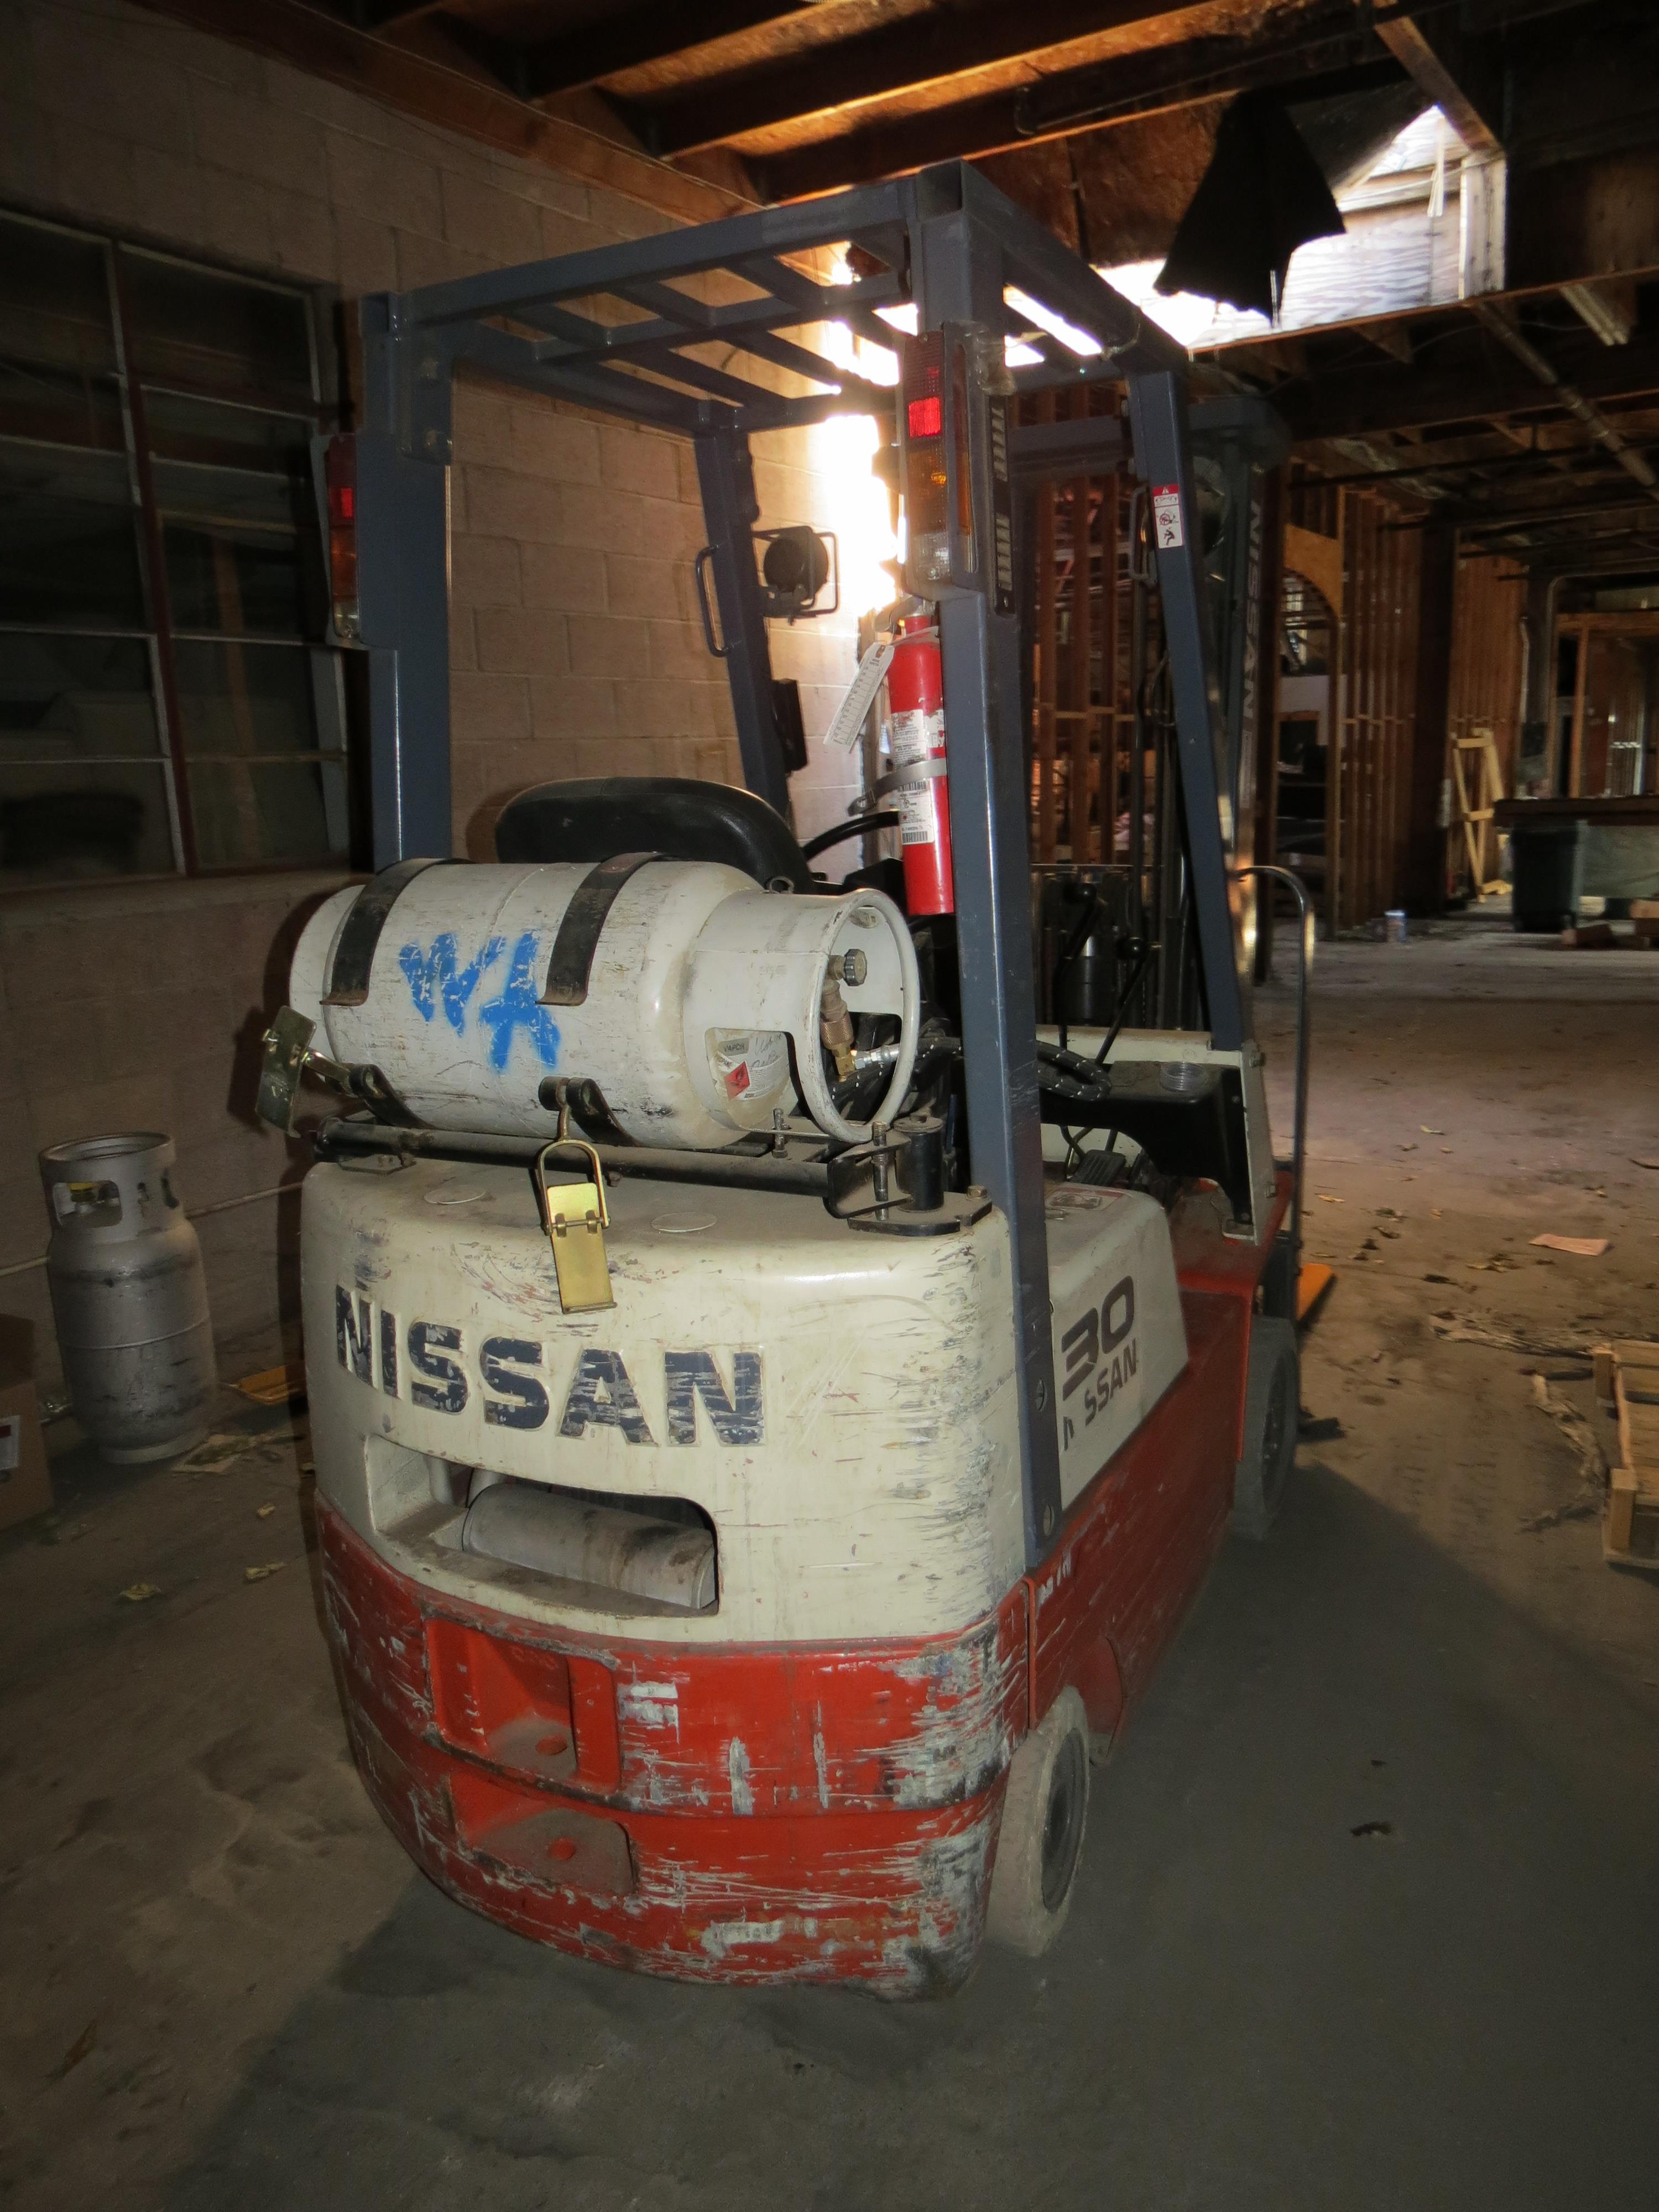 Nissan Model CPJ01A15PV 3-Stage 2500K Capacity LPG Forklift with Side Shift - Image 4 of 6